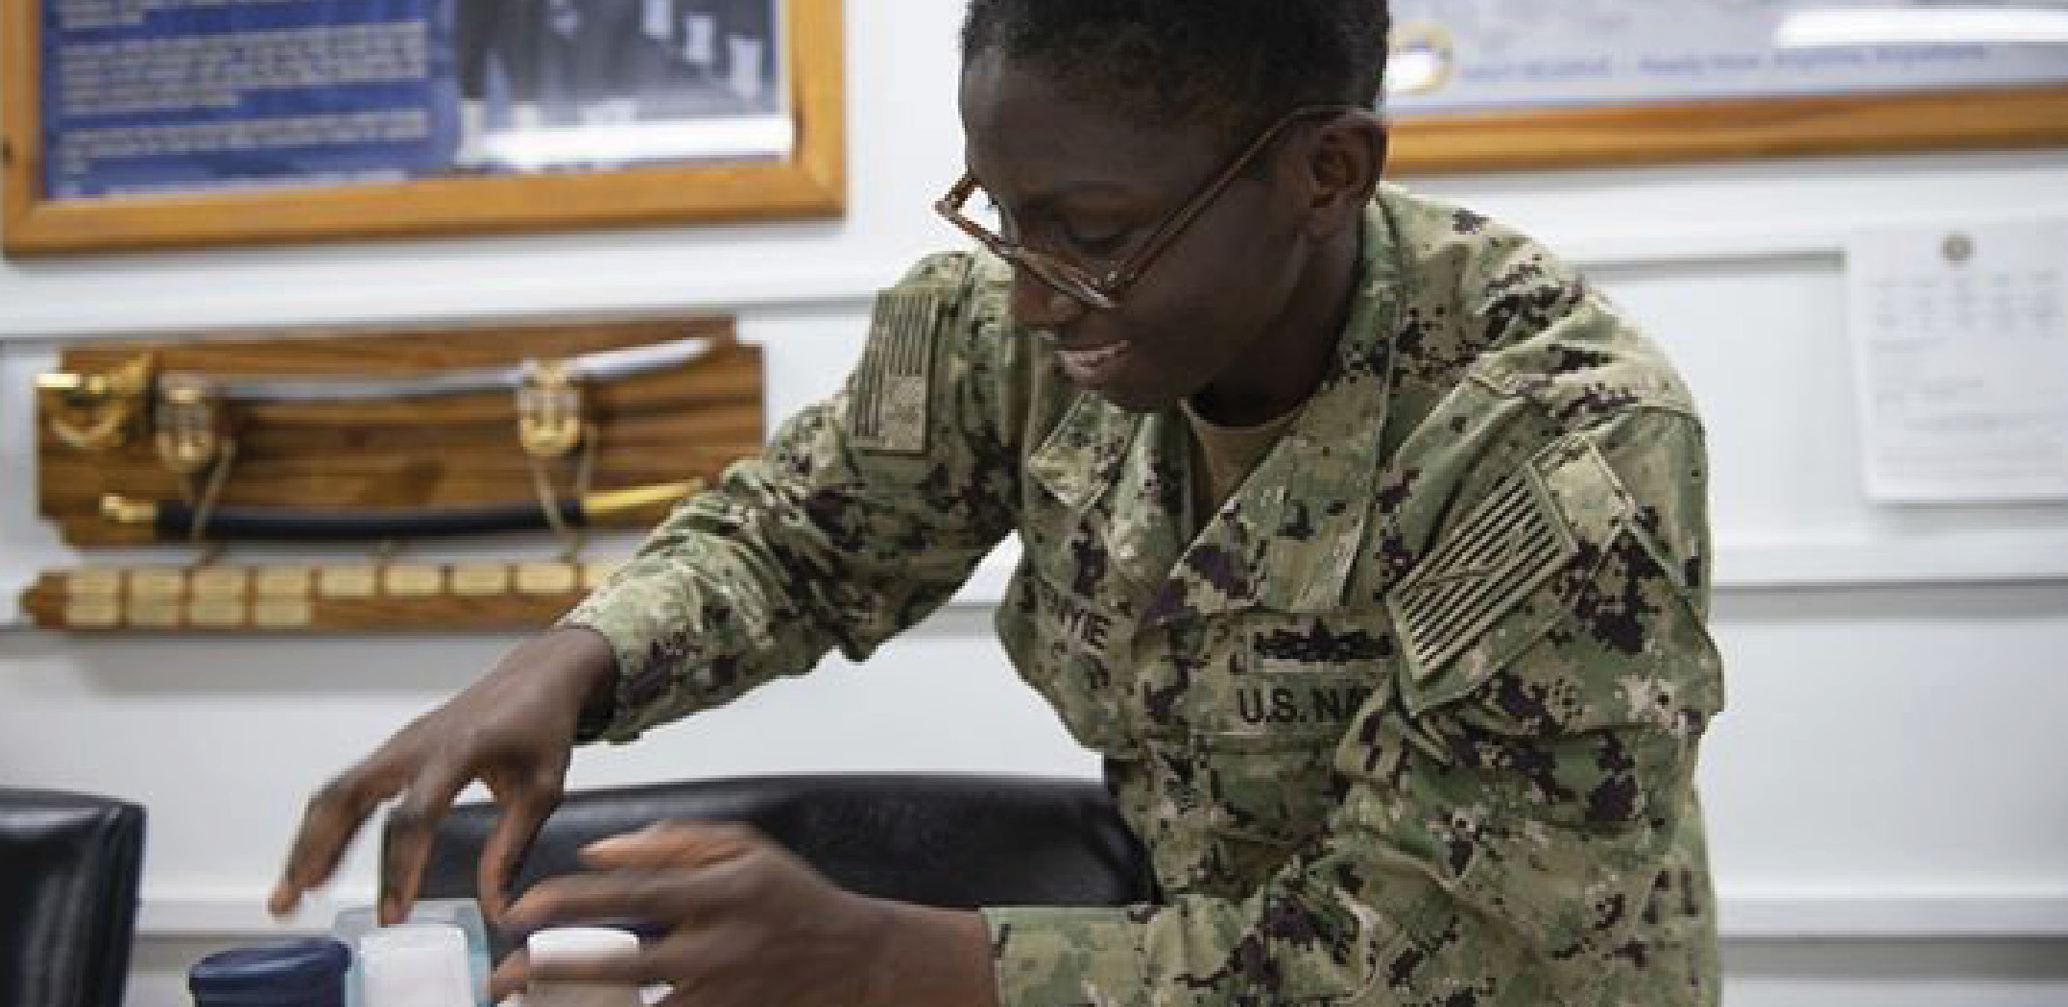 Our Red Cross team delivered personal care and hygiene products to U.S. female sailors aboard ships in Djibouti, Africa.